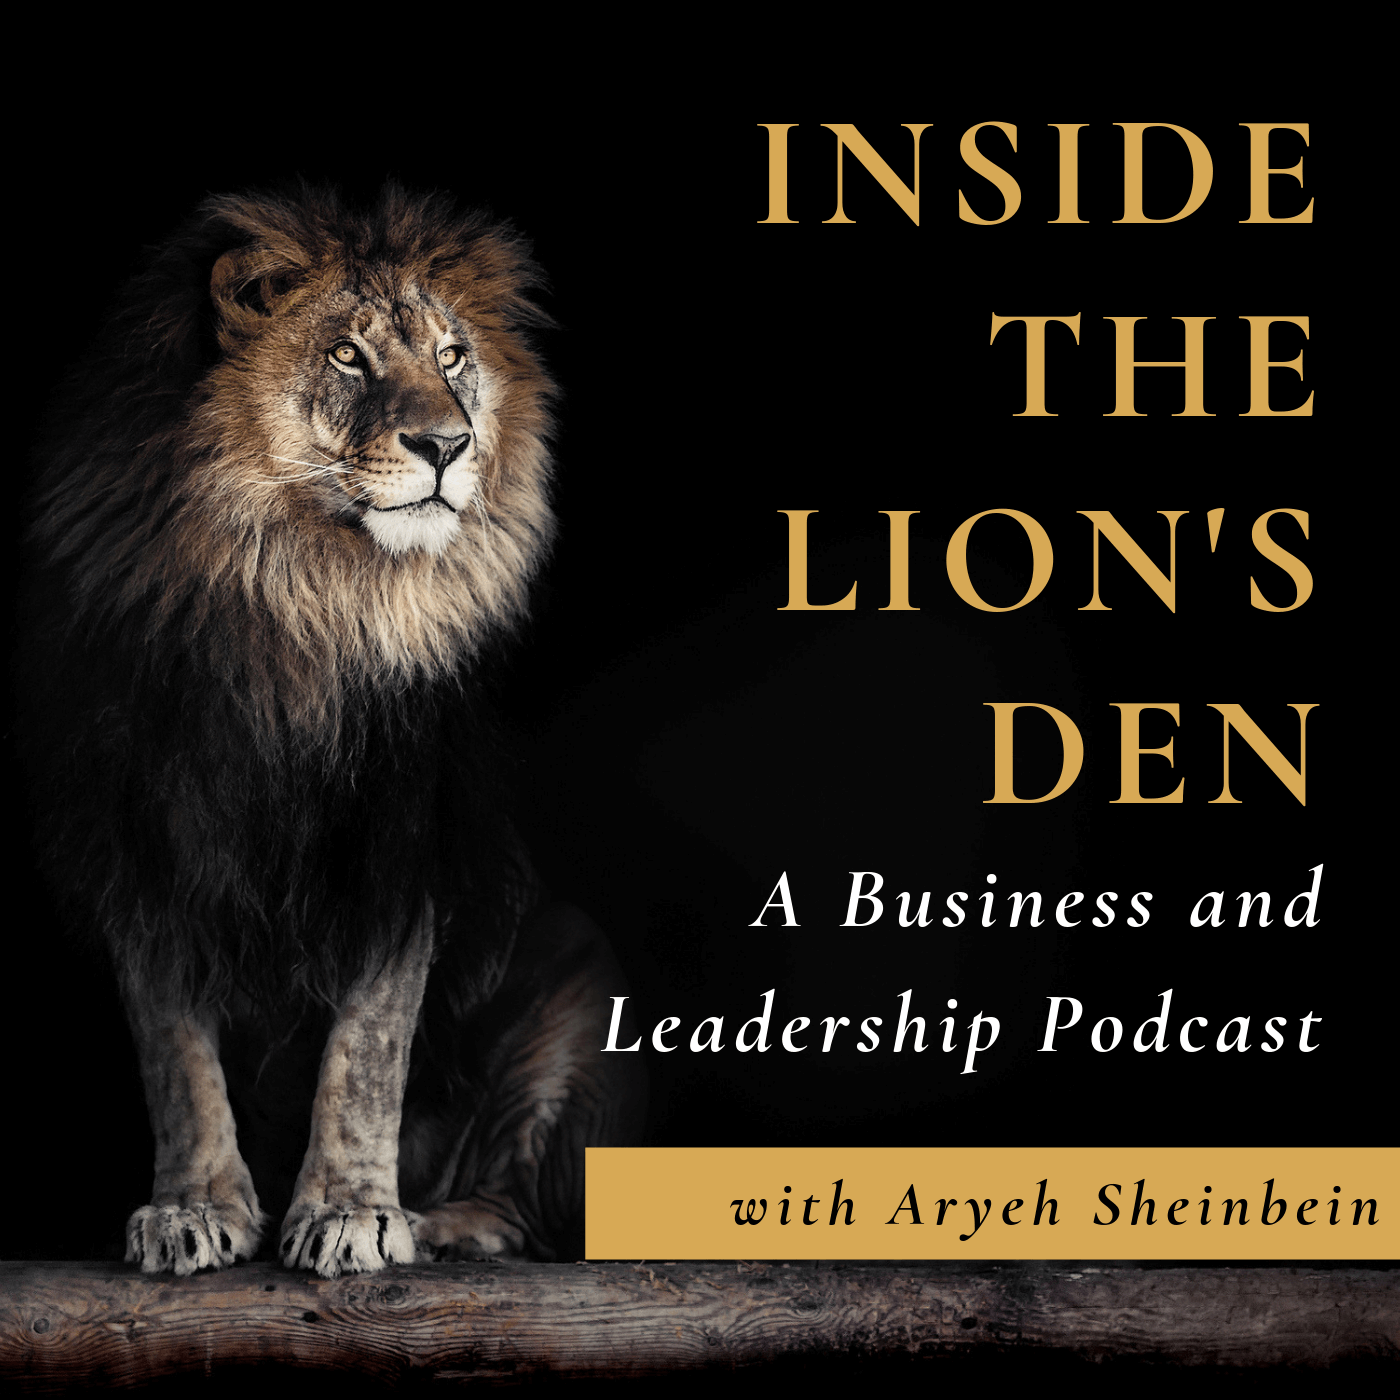 Inside the Lion's Den: A Business and Leadership Podcast show art